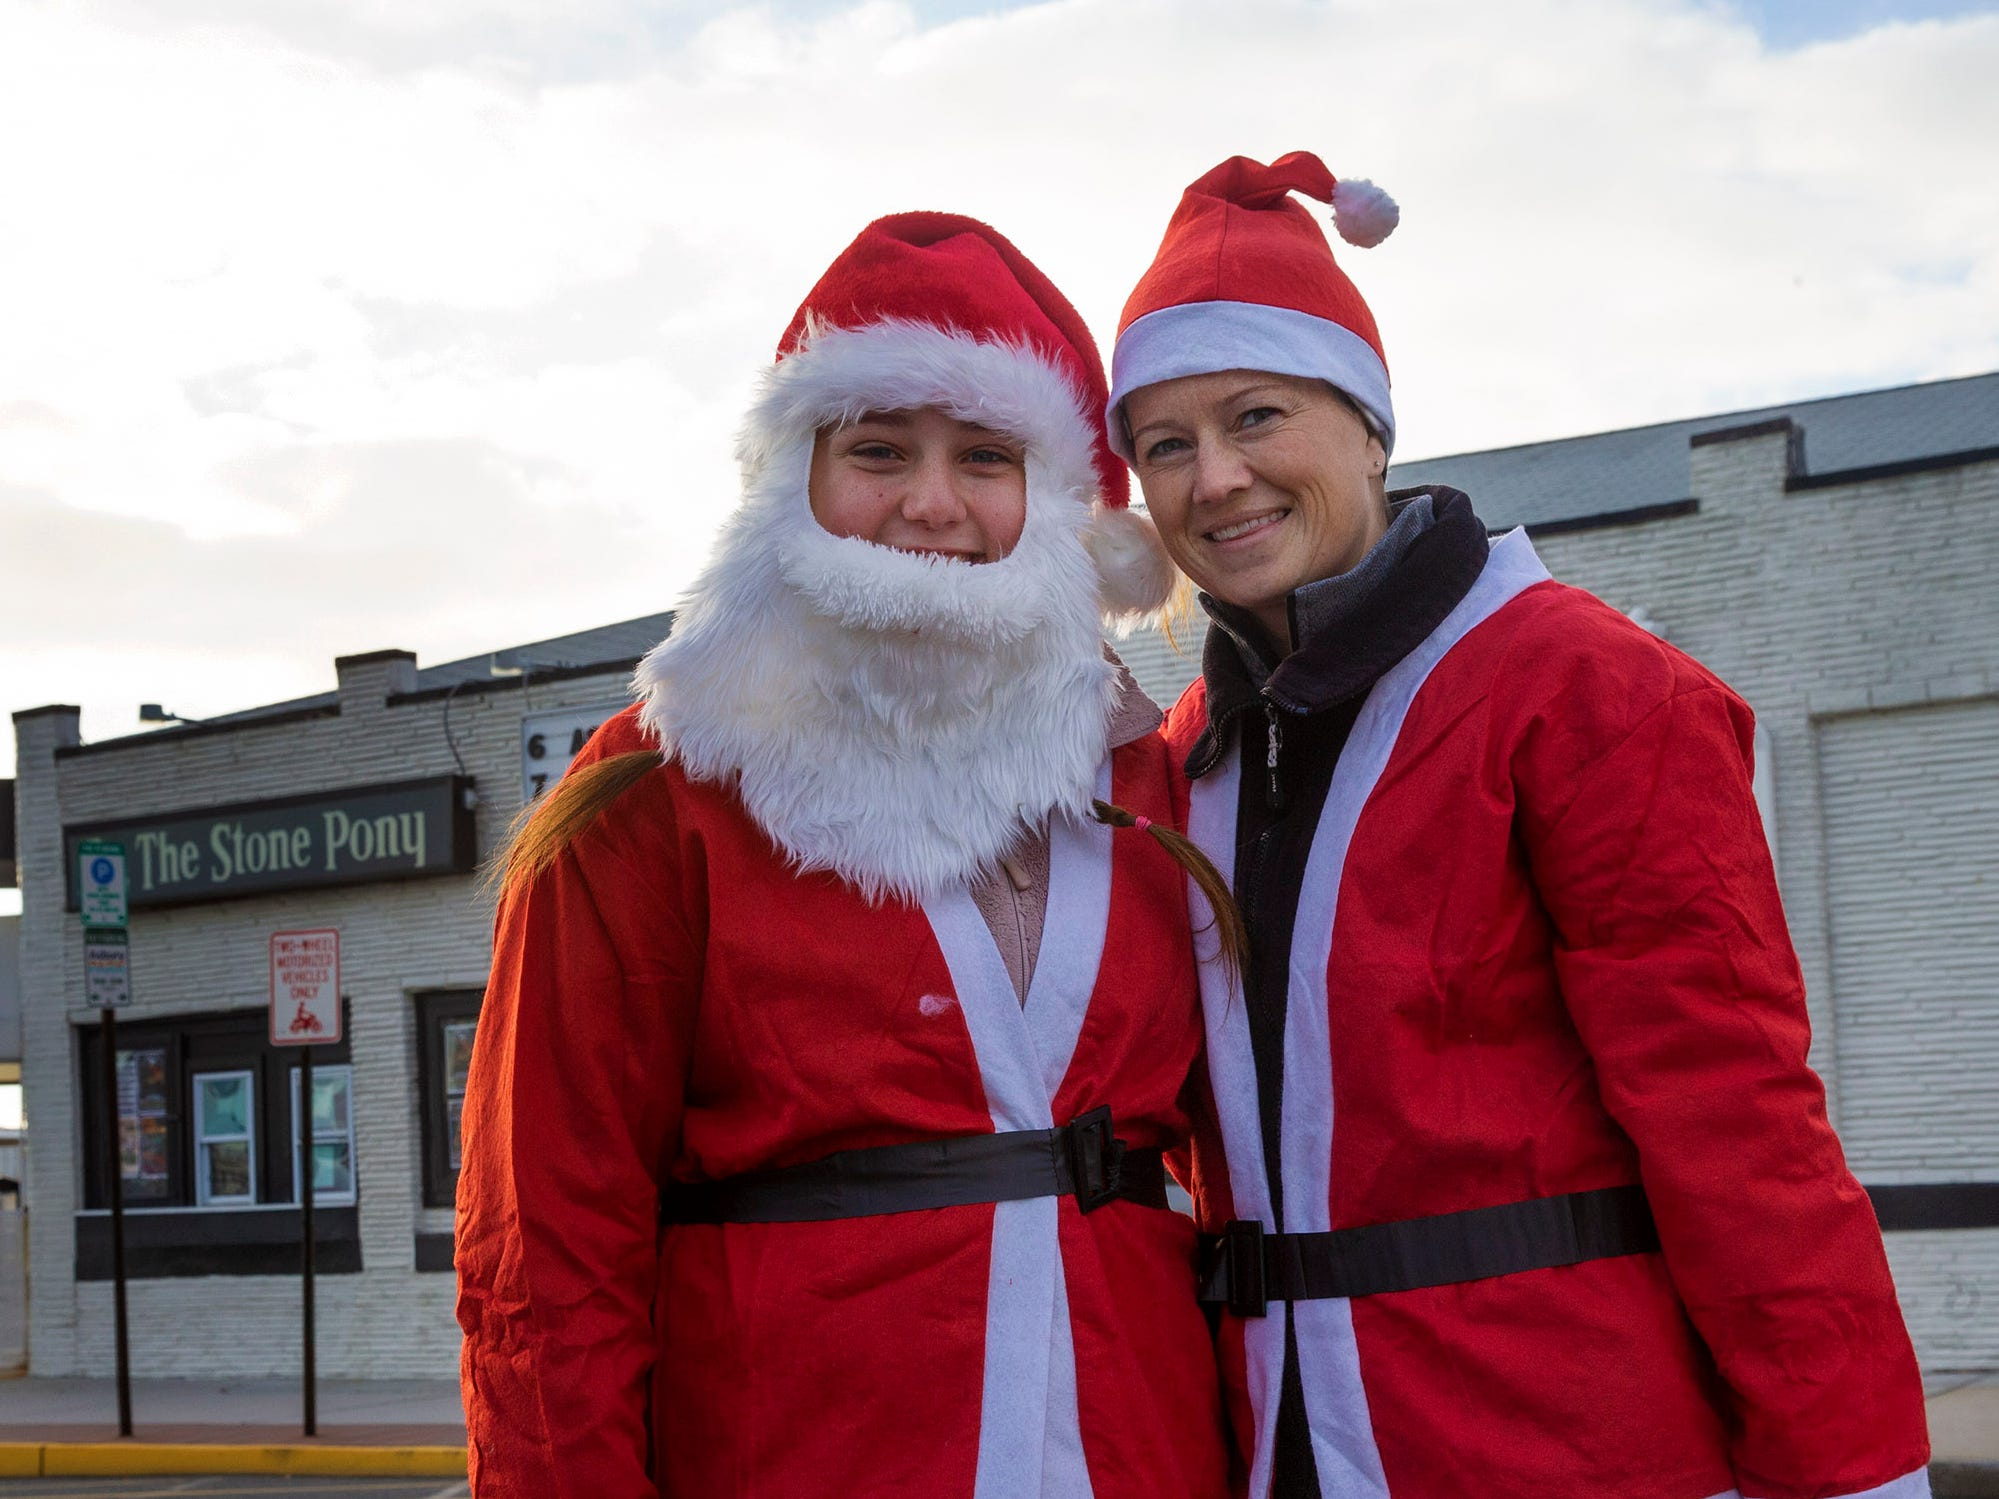 Mikalynn Kirby of Chersteerfield, NJ and Casee Morgan of South Hampton, dress for success in the Santa Run in Asbury Park.